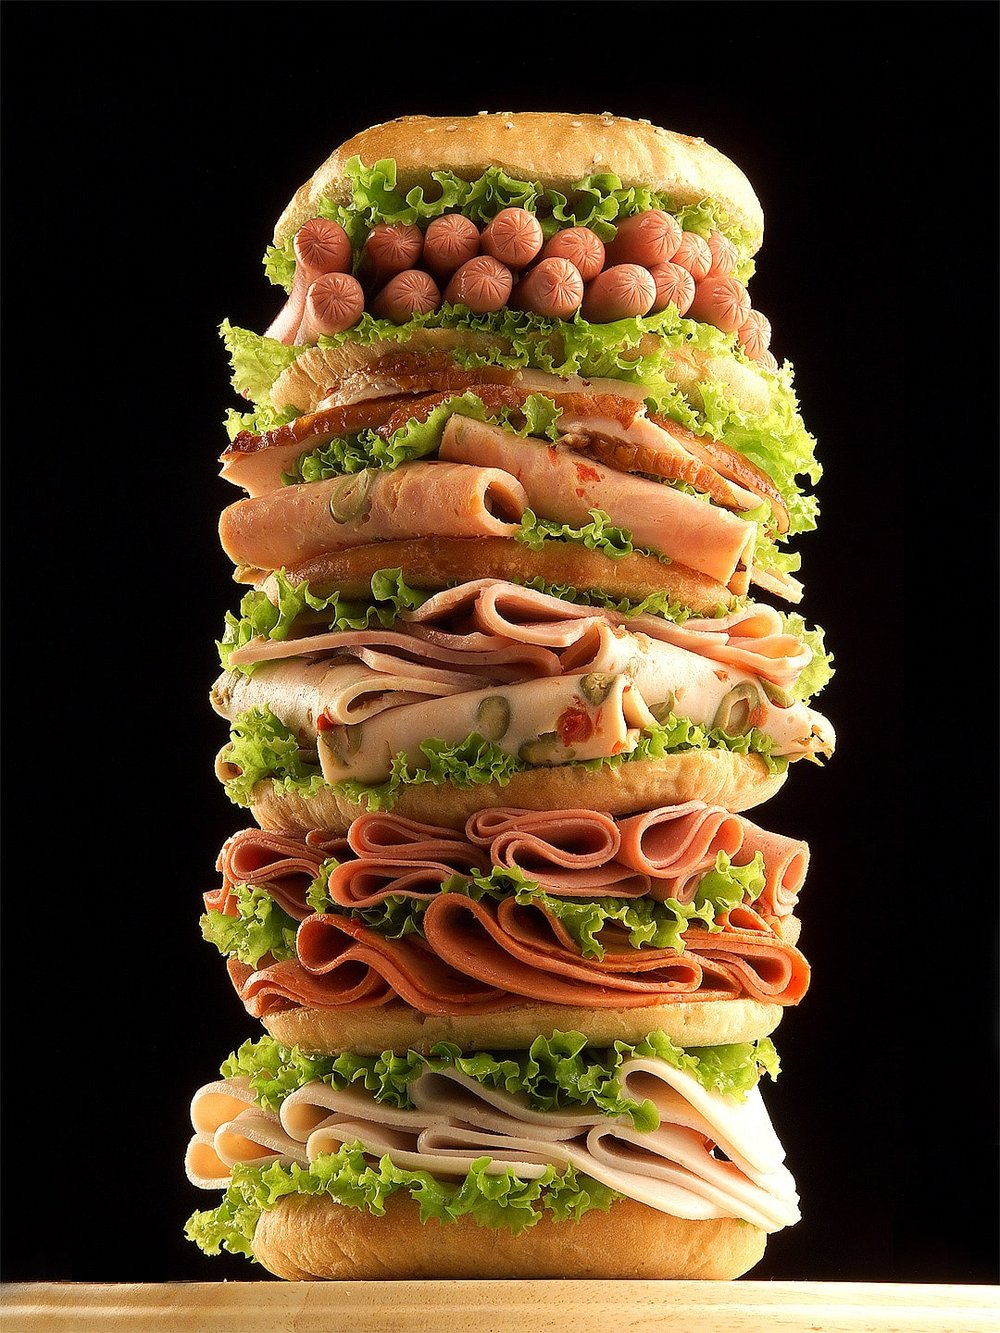 sanwich-tower-food-photography-miami-marcel-boldu.jpg